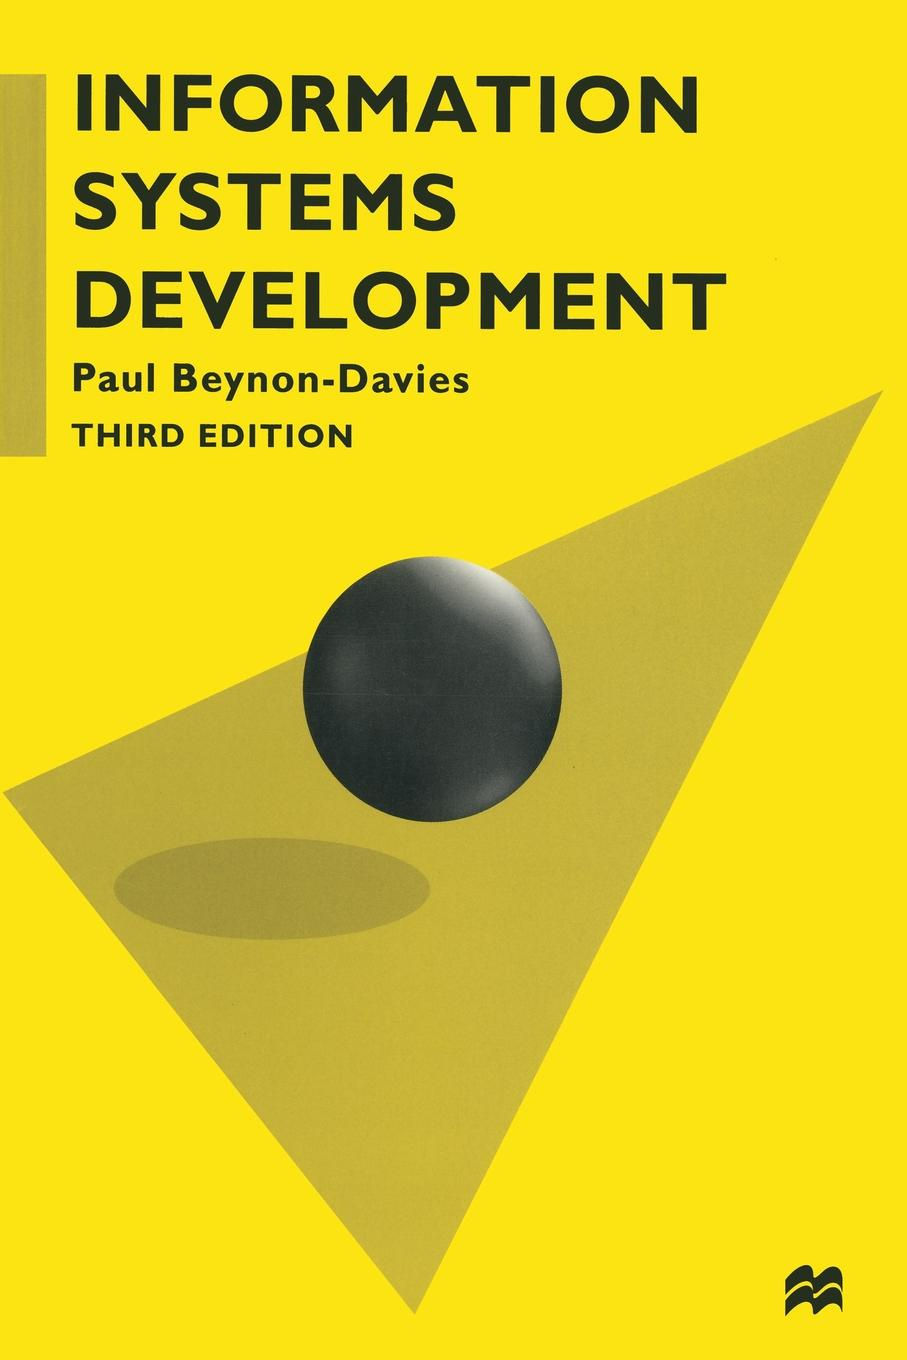 лучшая цена Paul Beynon-Davies Information Systems Development. An Introduction to Information Systems Engineering